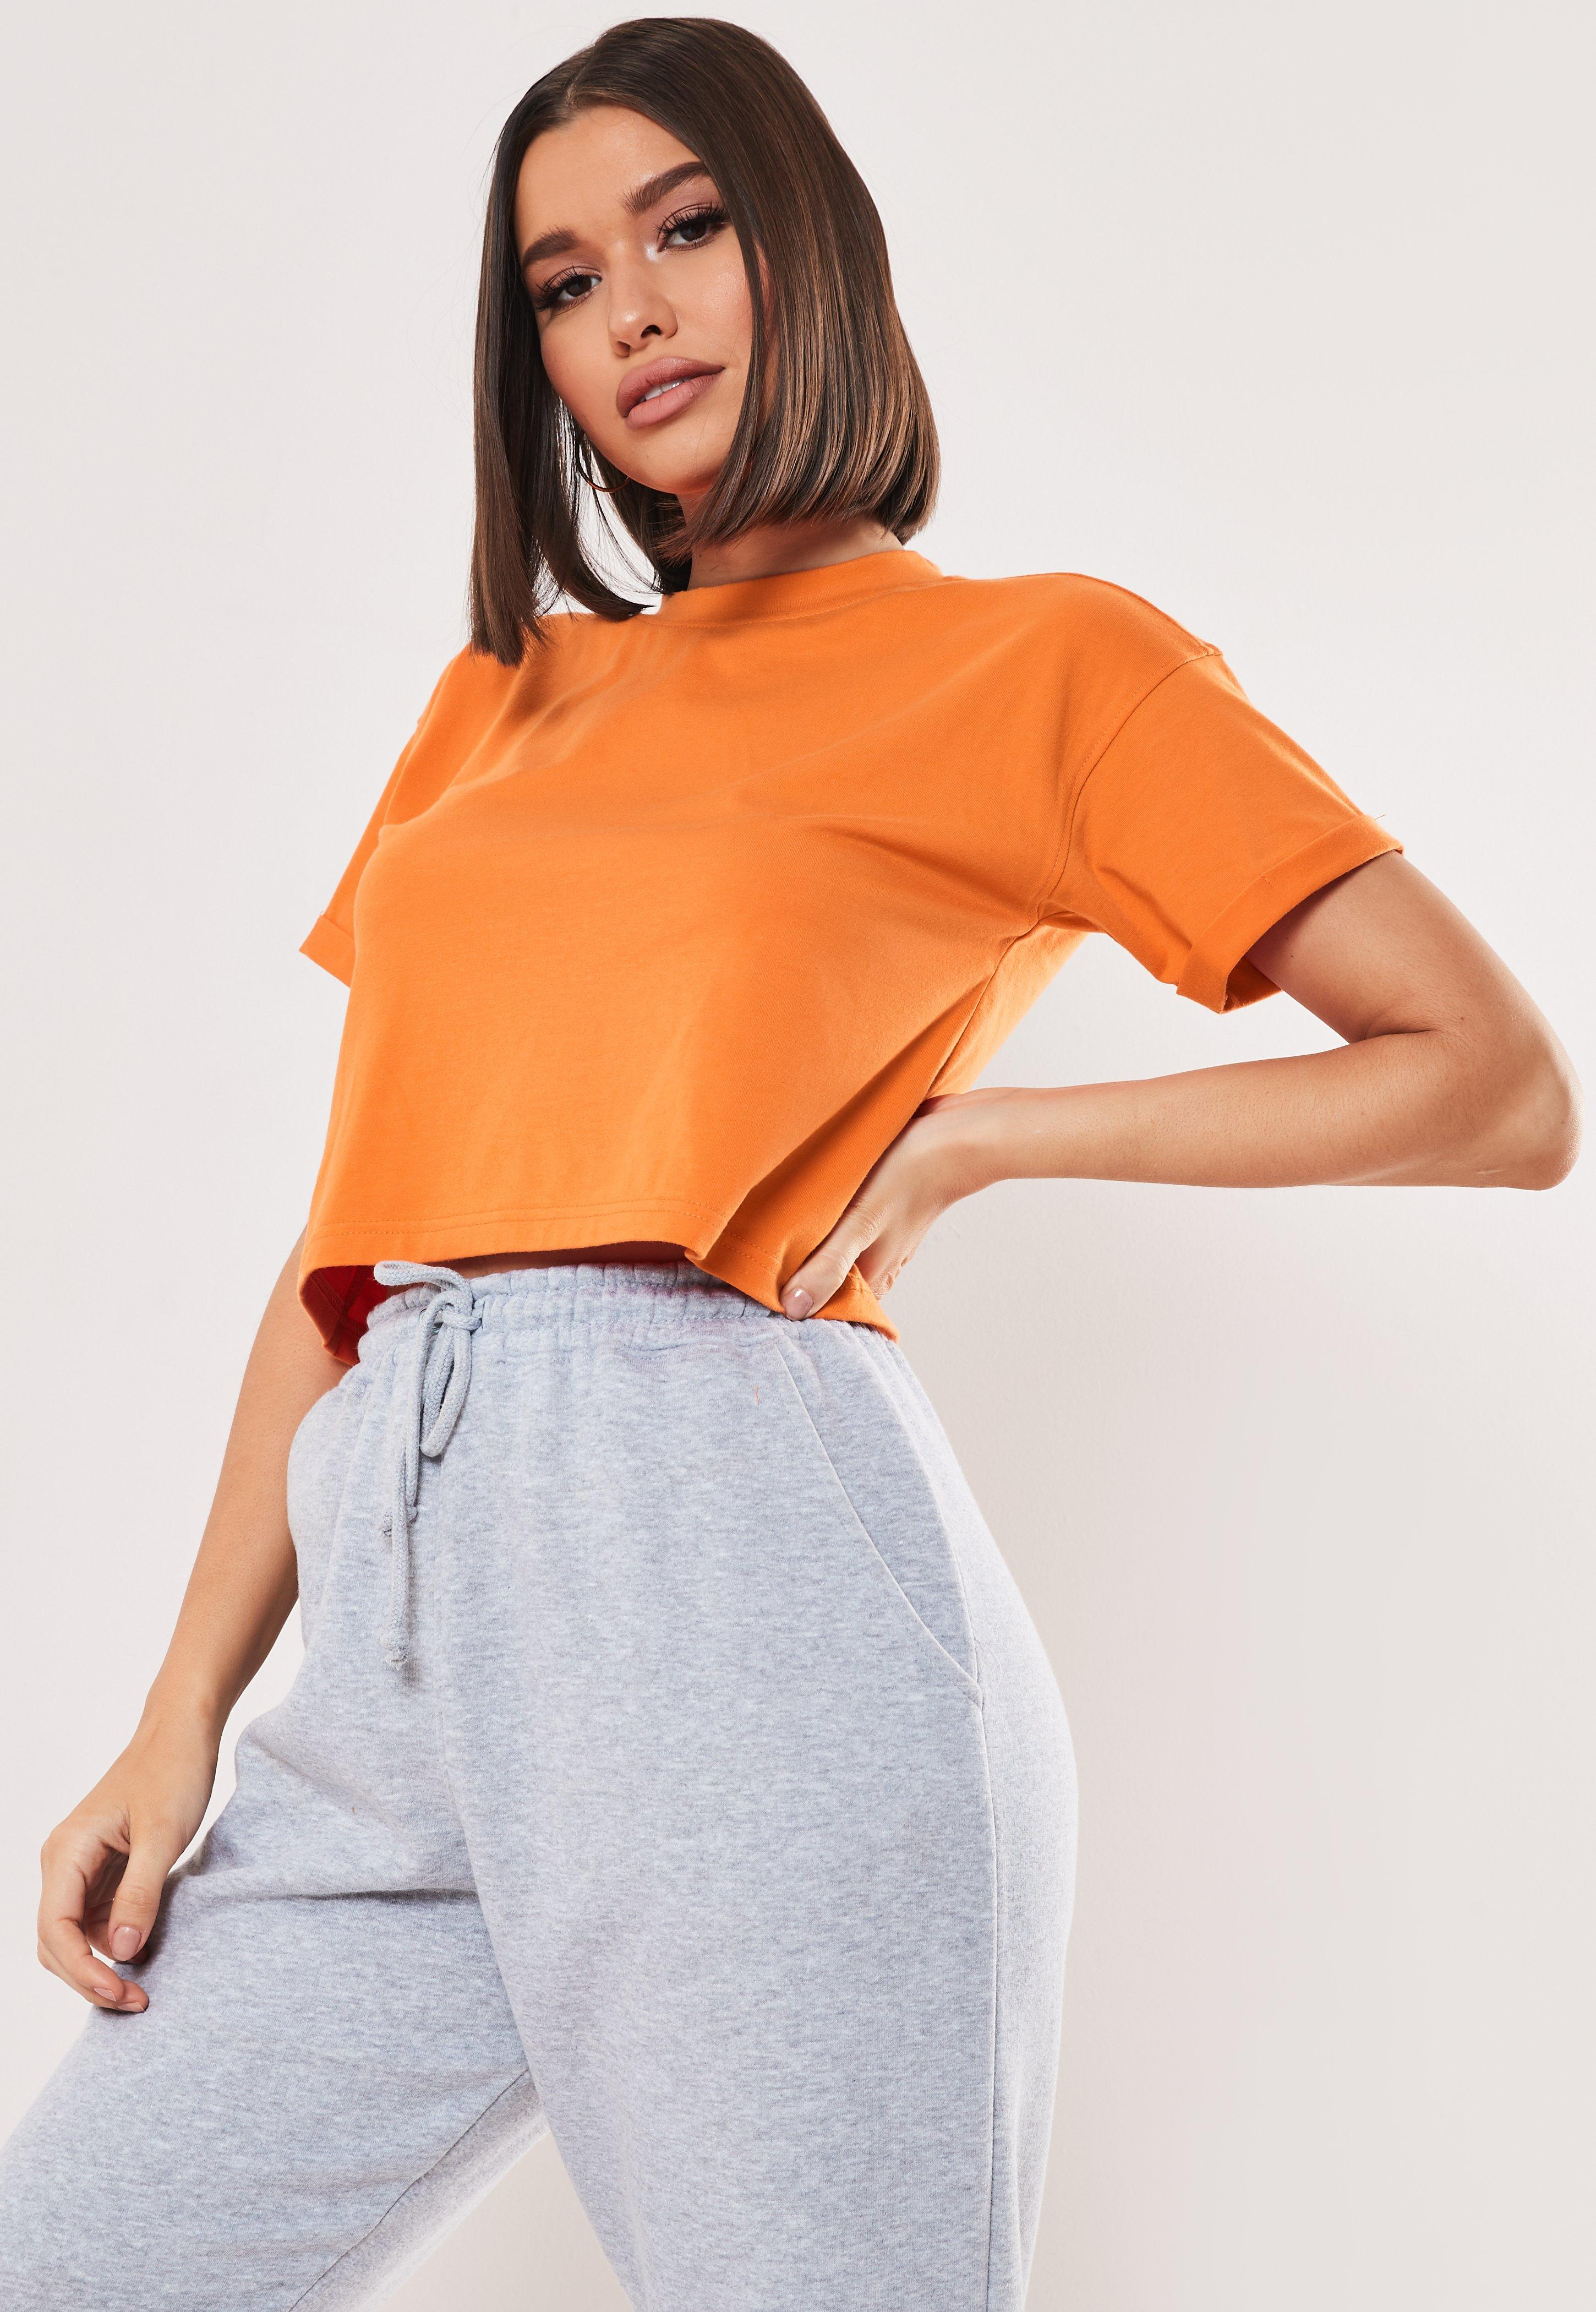 d416b7b05da6 Tall Clothing | Women's Tall Clothing - Missguided